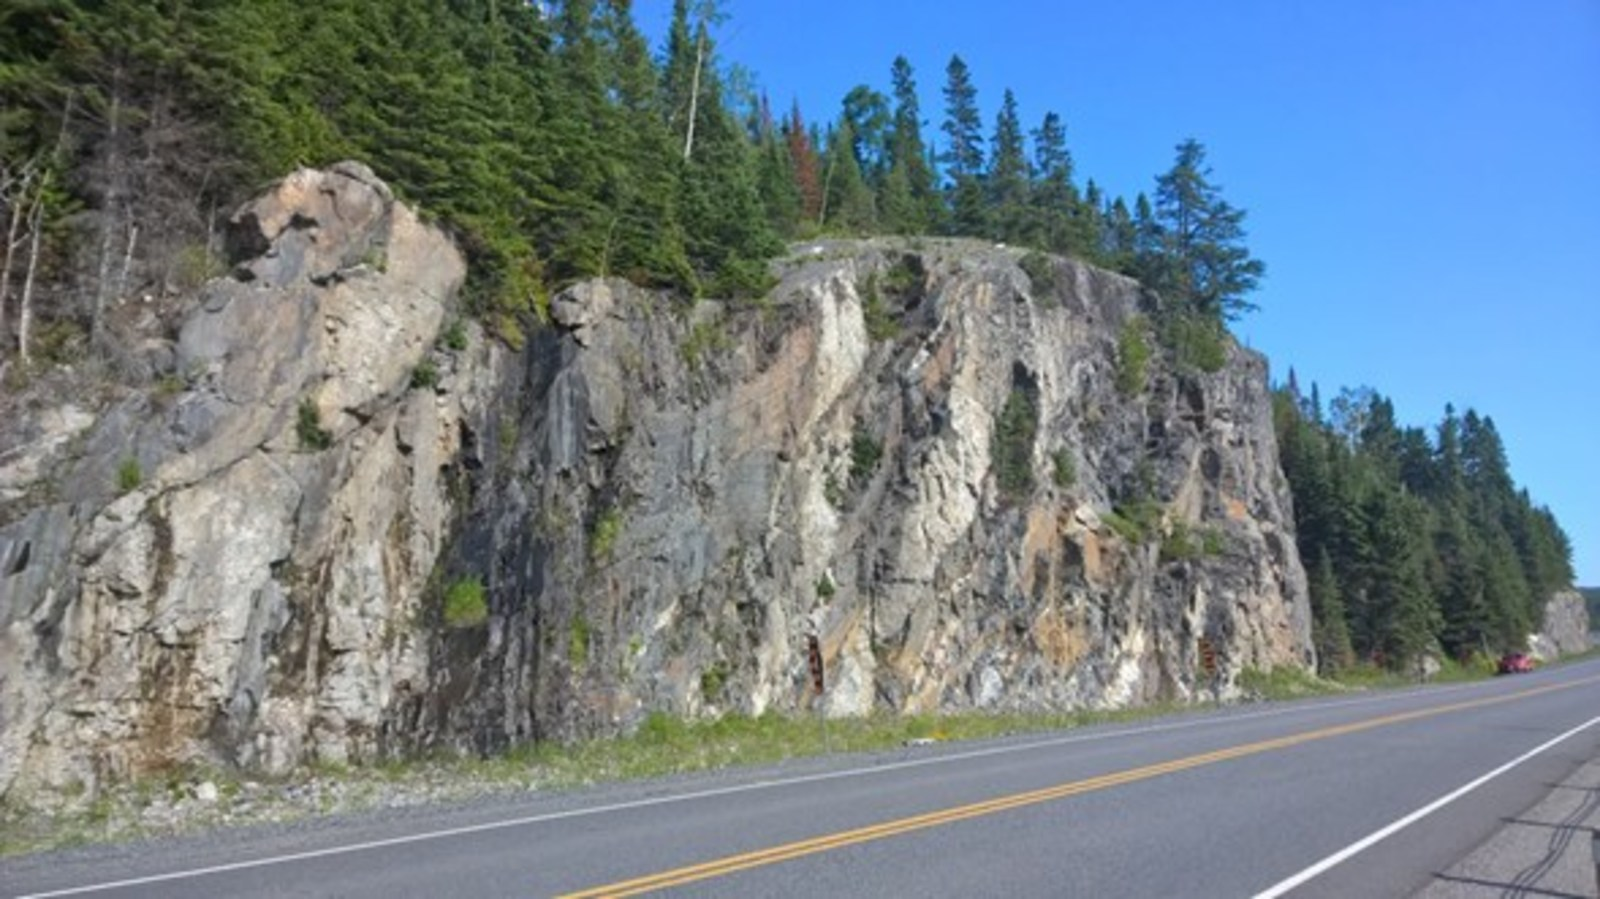 Figure 1 – Photo of the road embankment from similar rocks in the area; here a vertical slope with a height of over 15 metres.